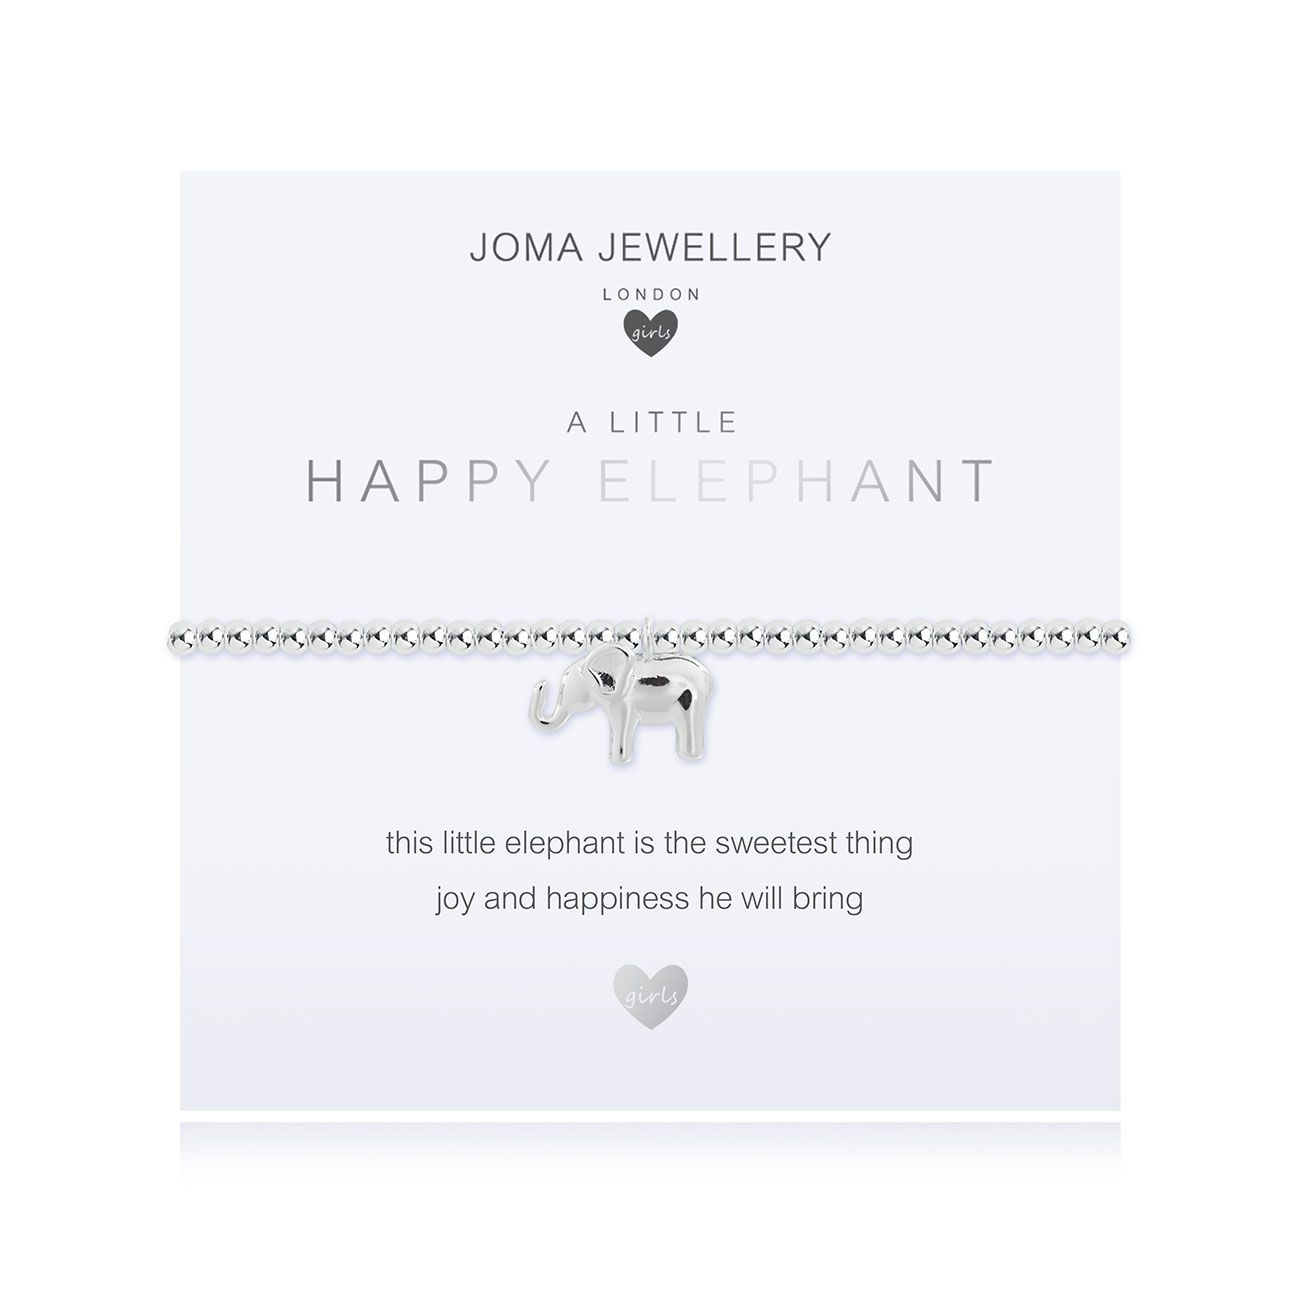 Joma Girls a little Happy Elephant Bracelet - elephant | More Than Just A Gift